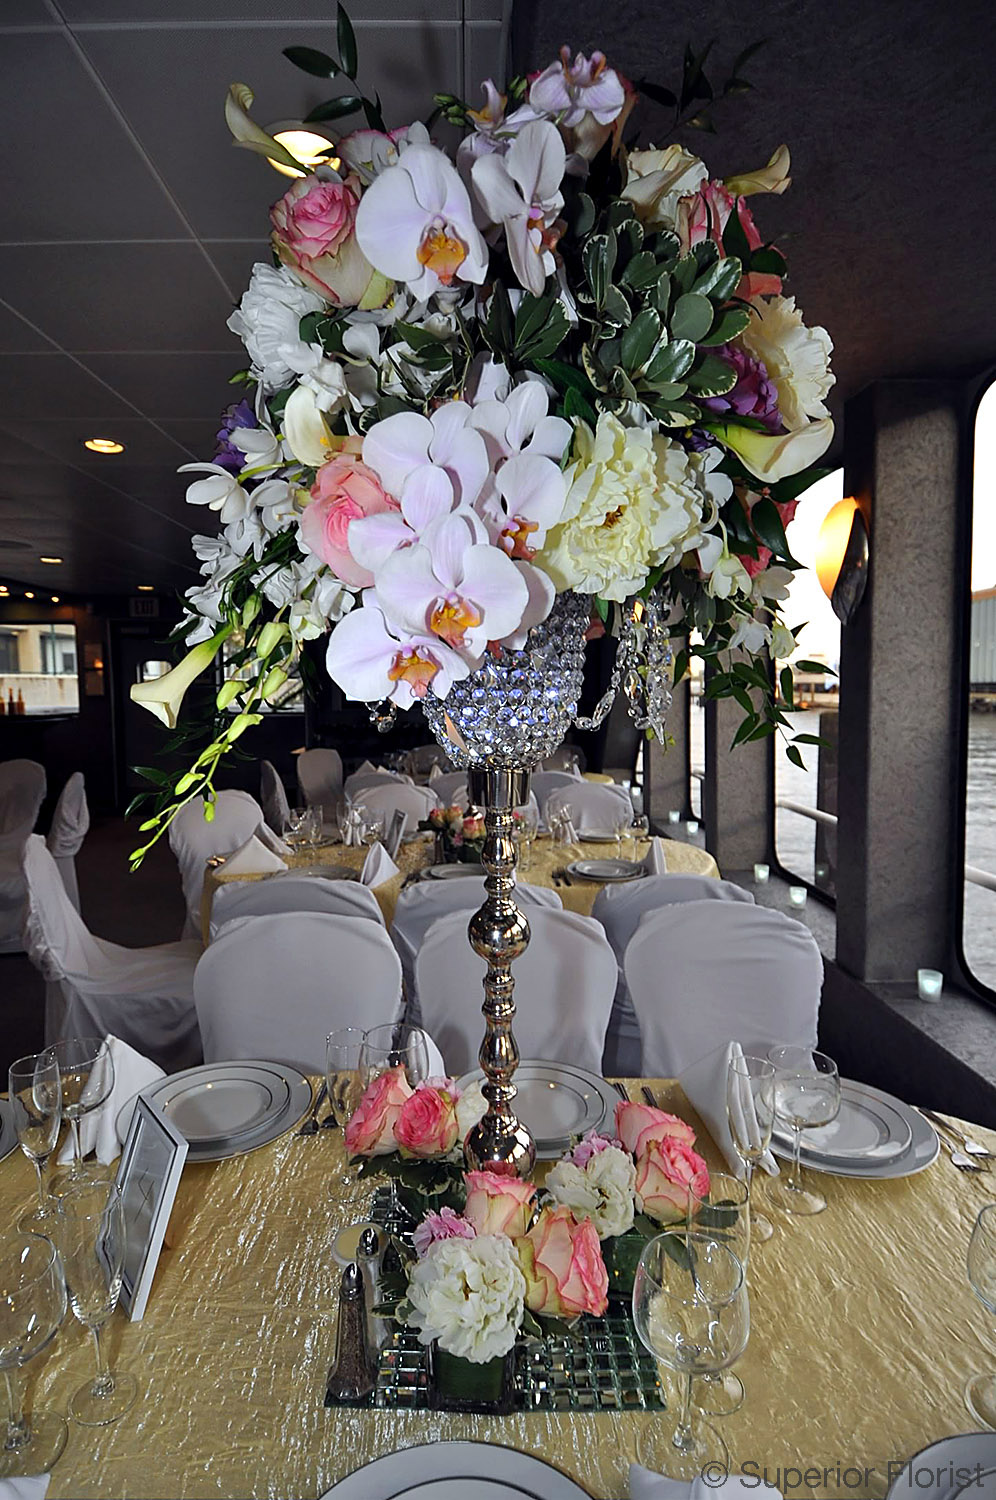 Superior Florist – Centerpieces: Phalaenopsis, Callas, Esperanzas, roses in a silver and crystal vase. Complimentary flowers on table at base of vase.